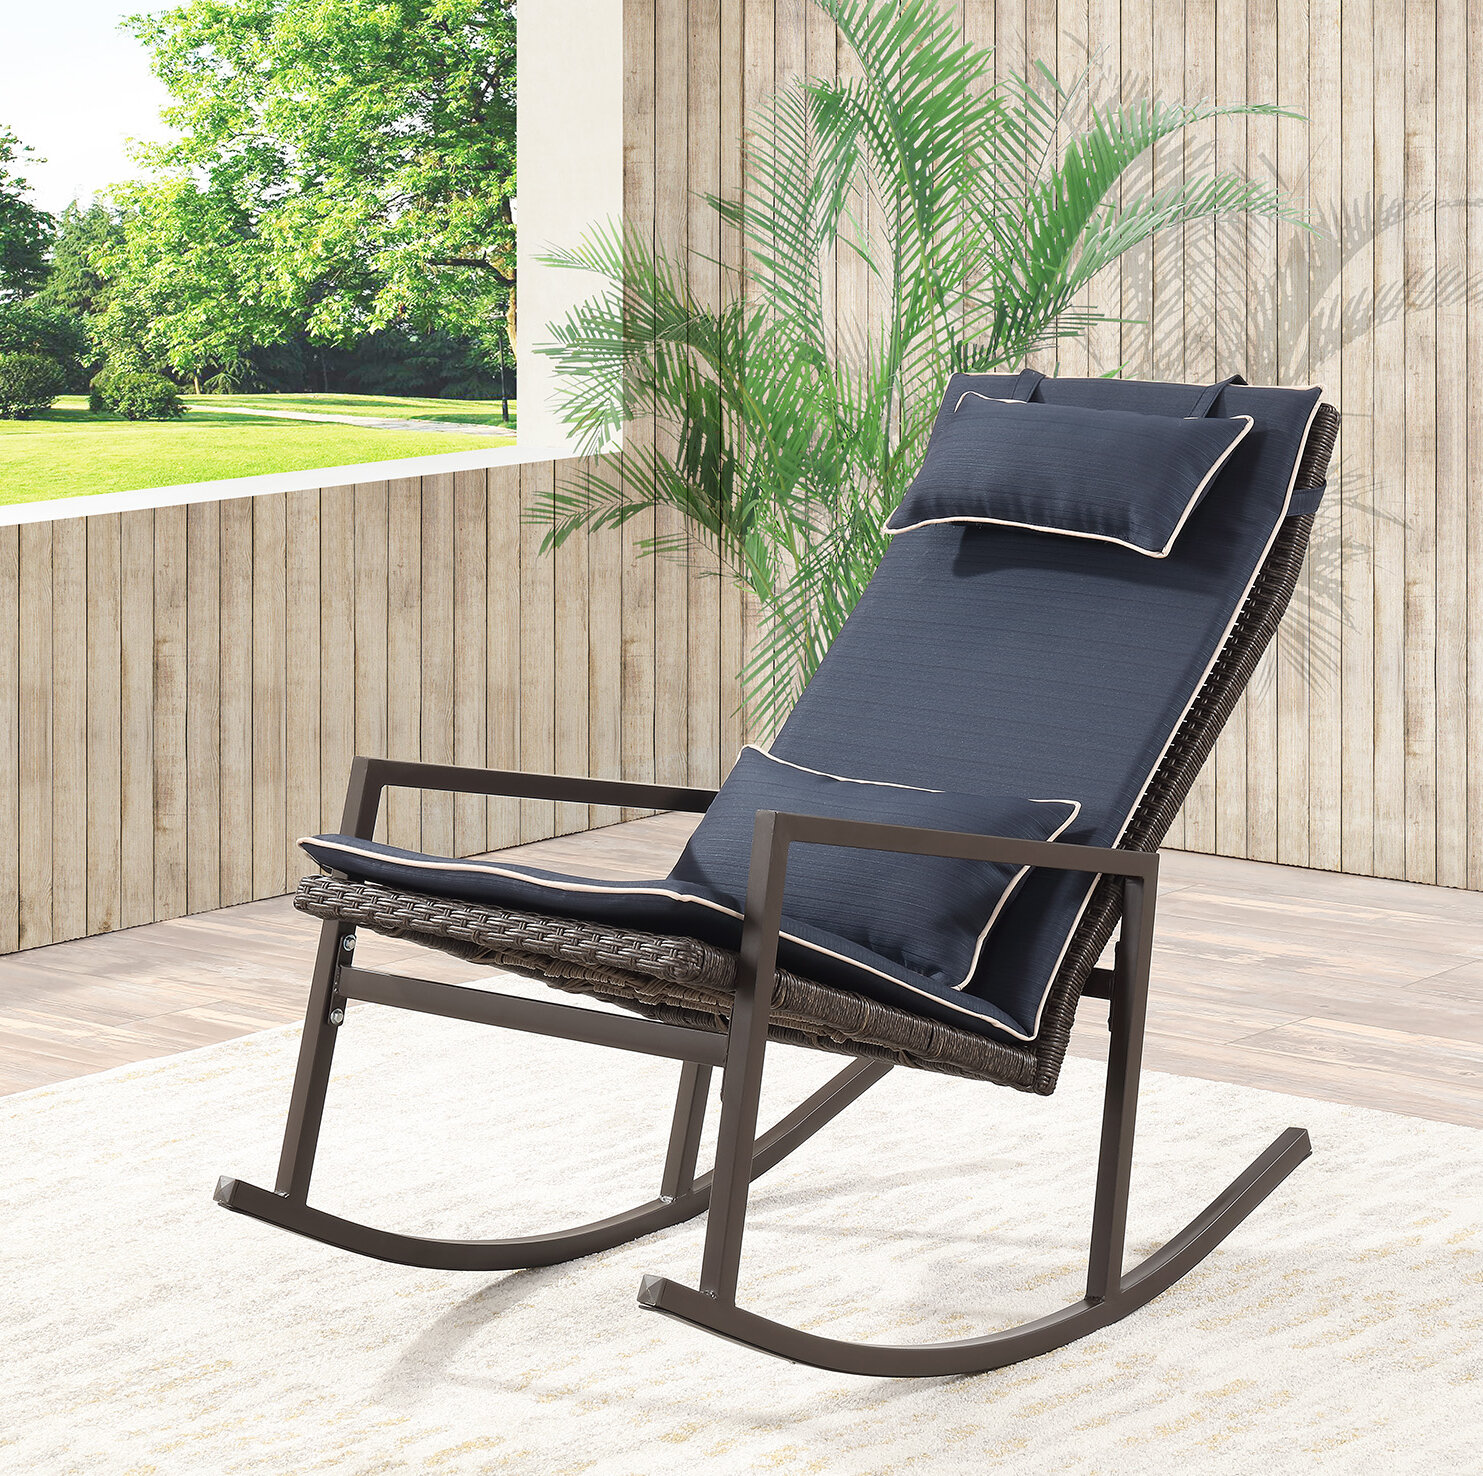 Tremberth Outdoor Rocking Chair With